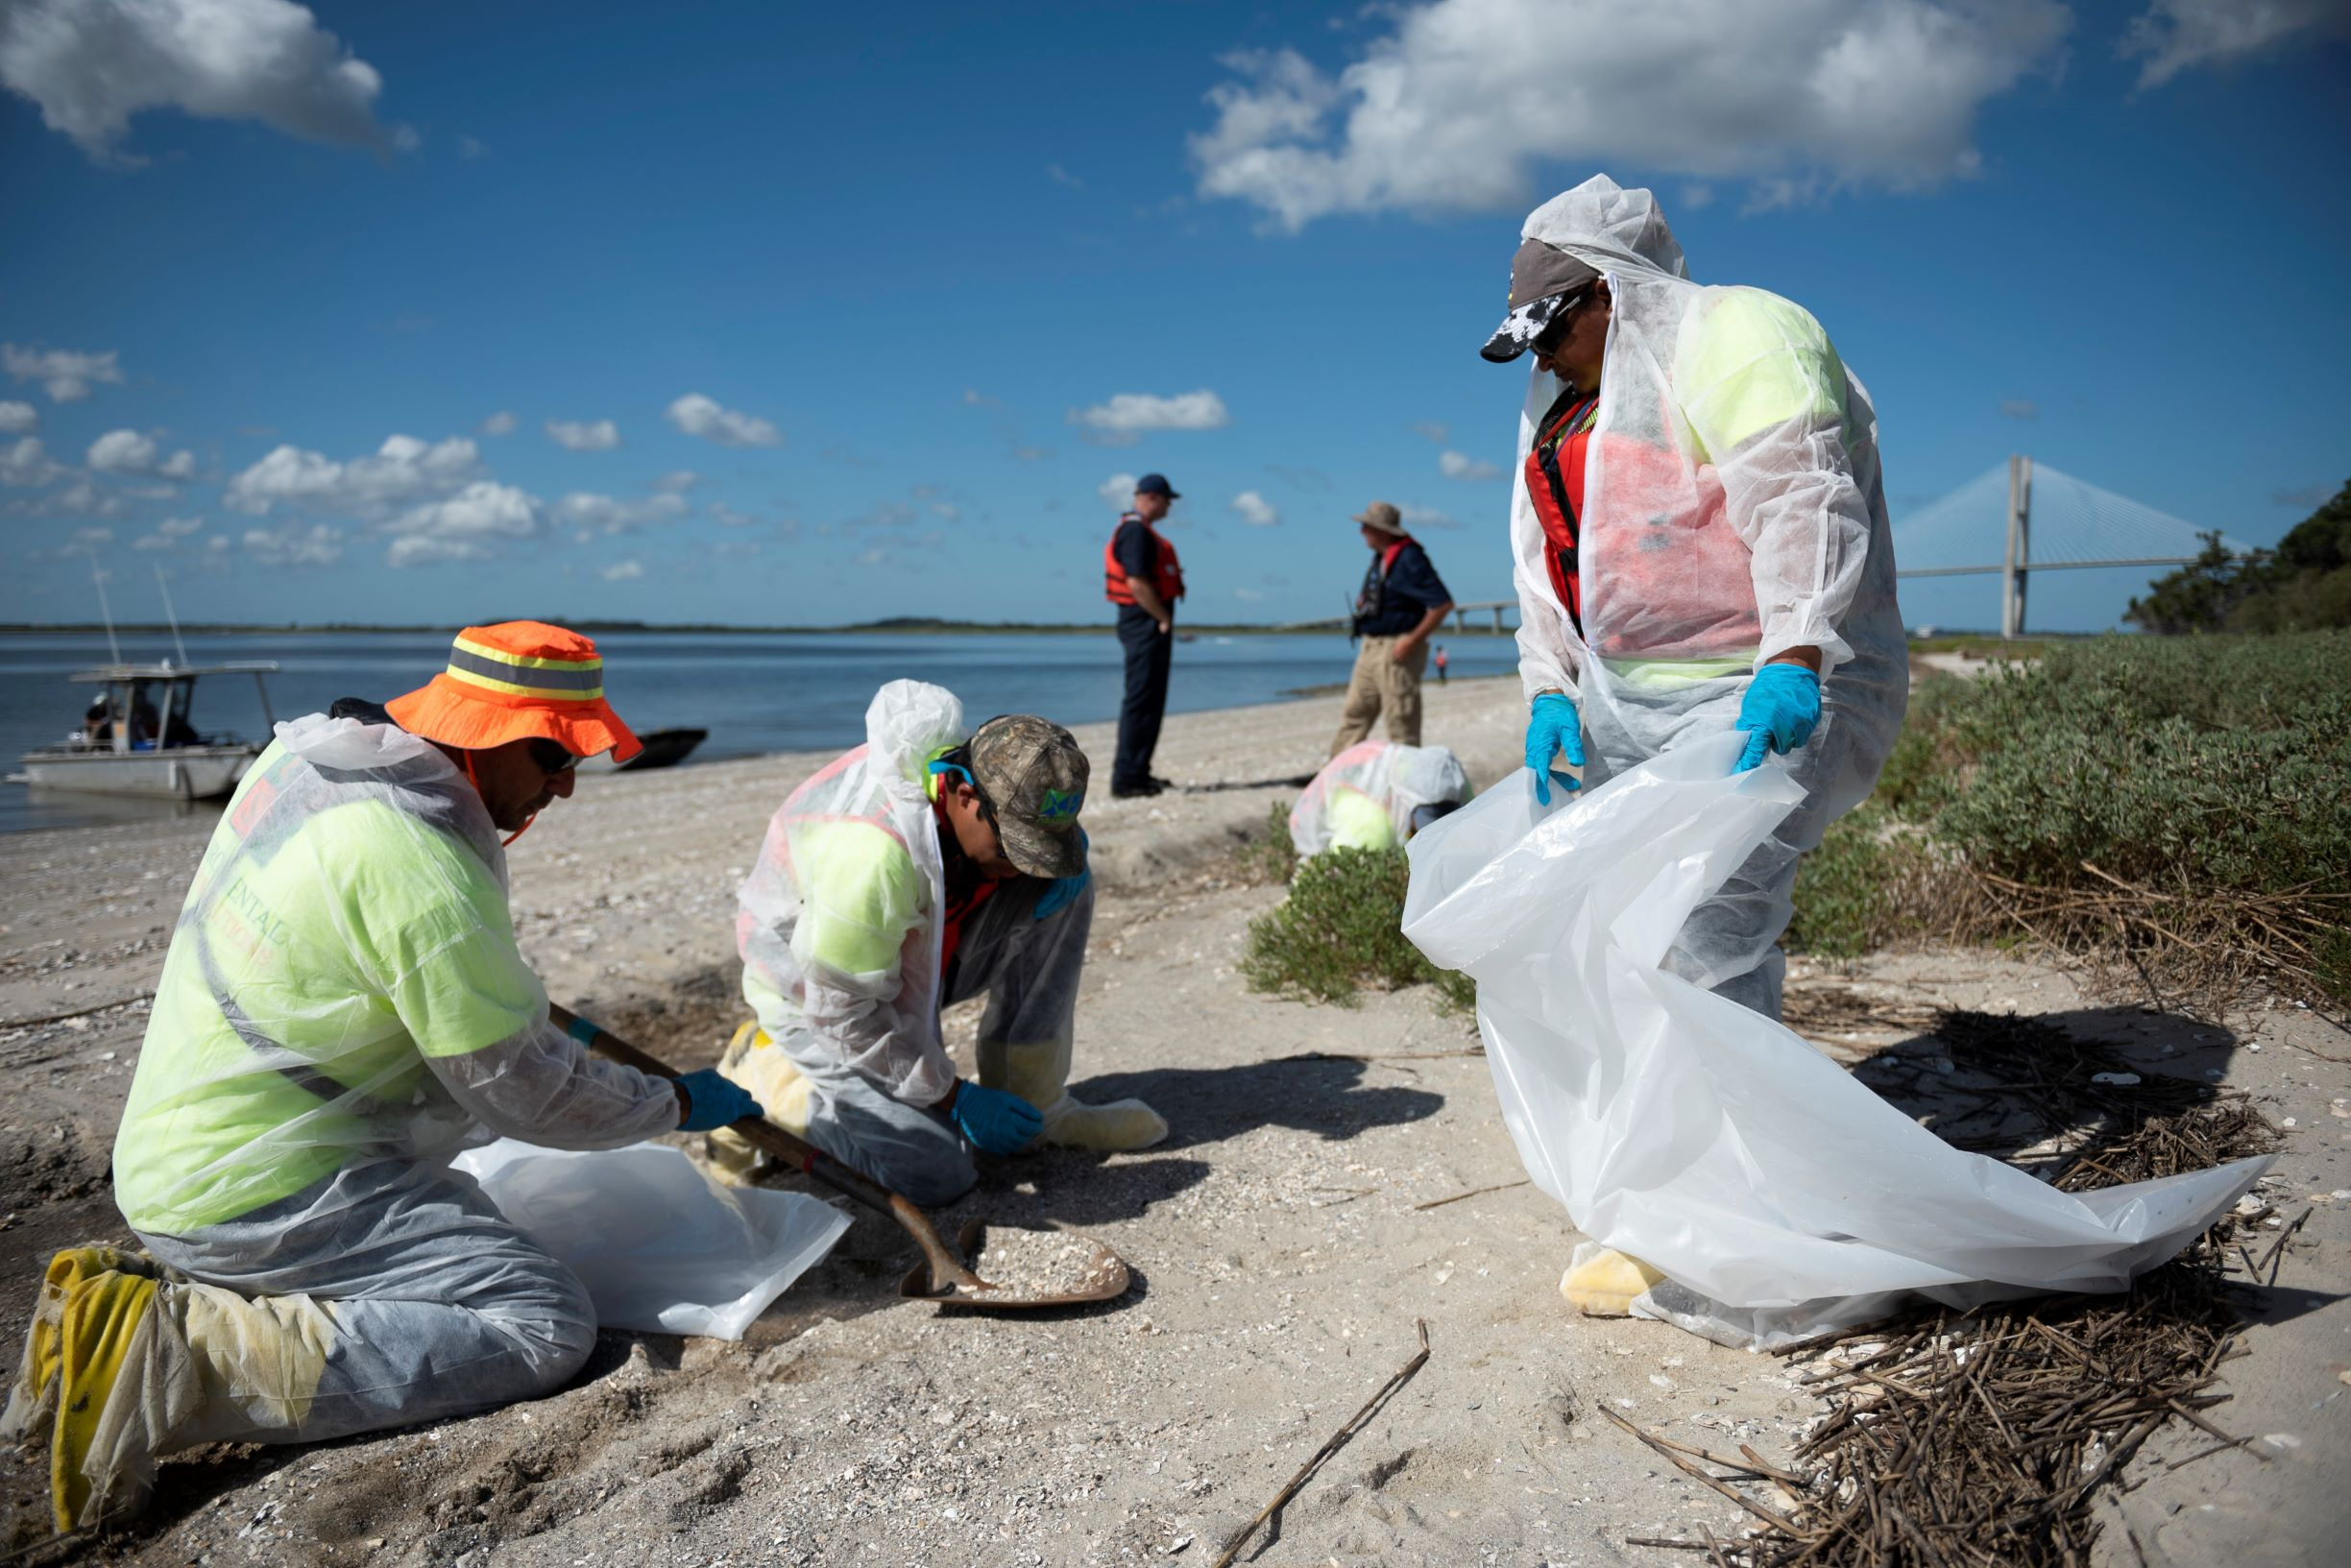 Several people in protective suits shoveling up sand from a beach into a garbage bag.